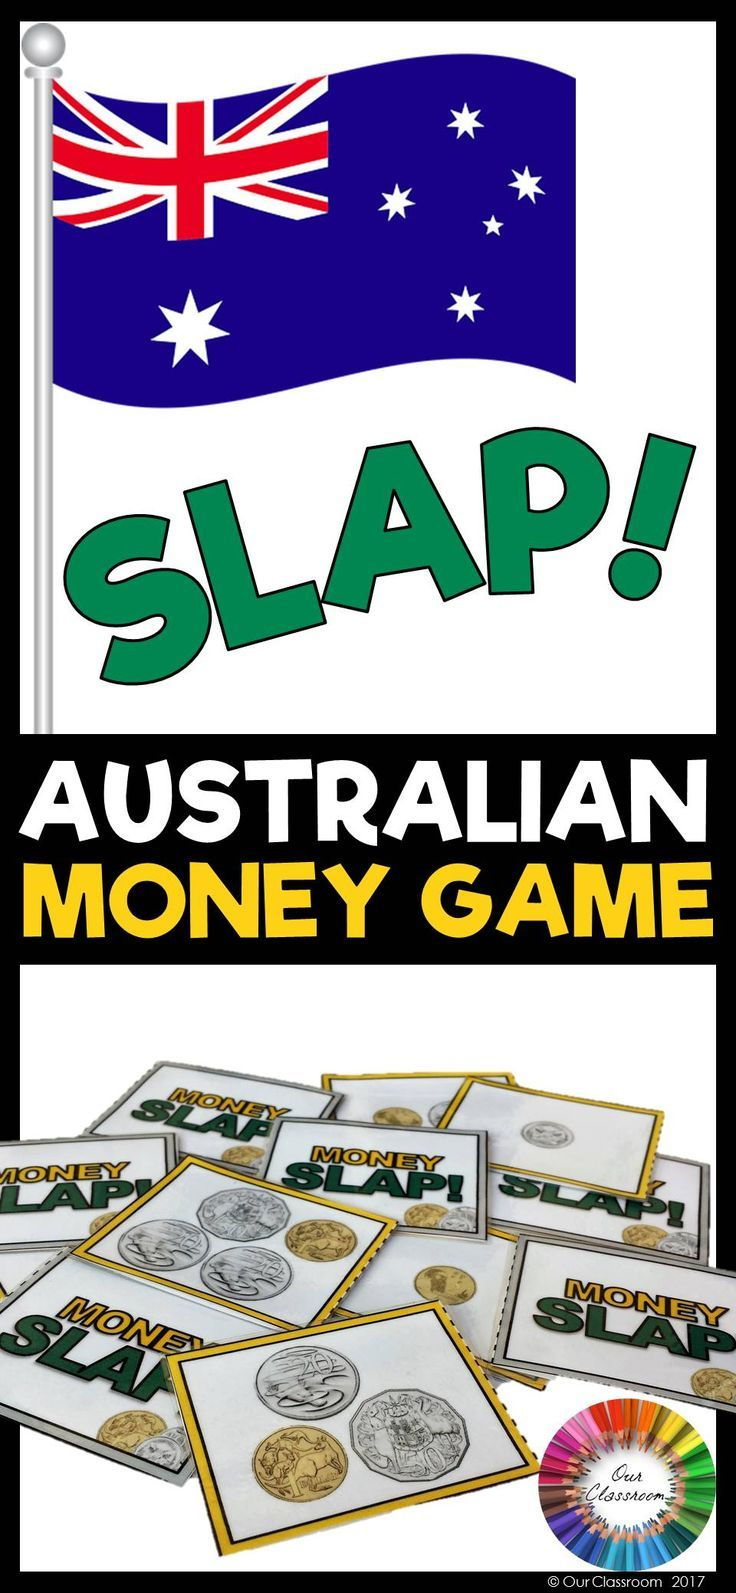 Practise counting money and recognising Australian Coins with this super fun Coin Slap game! The different combination of coins and values will help children to understand and count different money values. Play this fun game now!